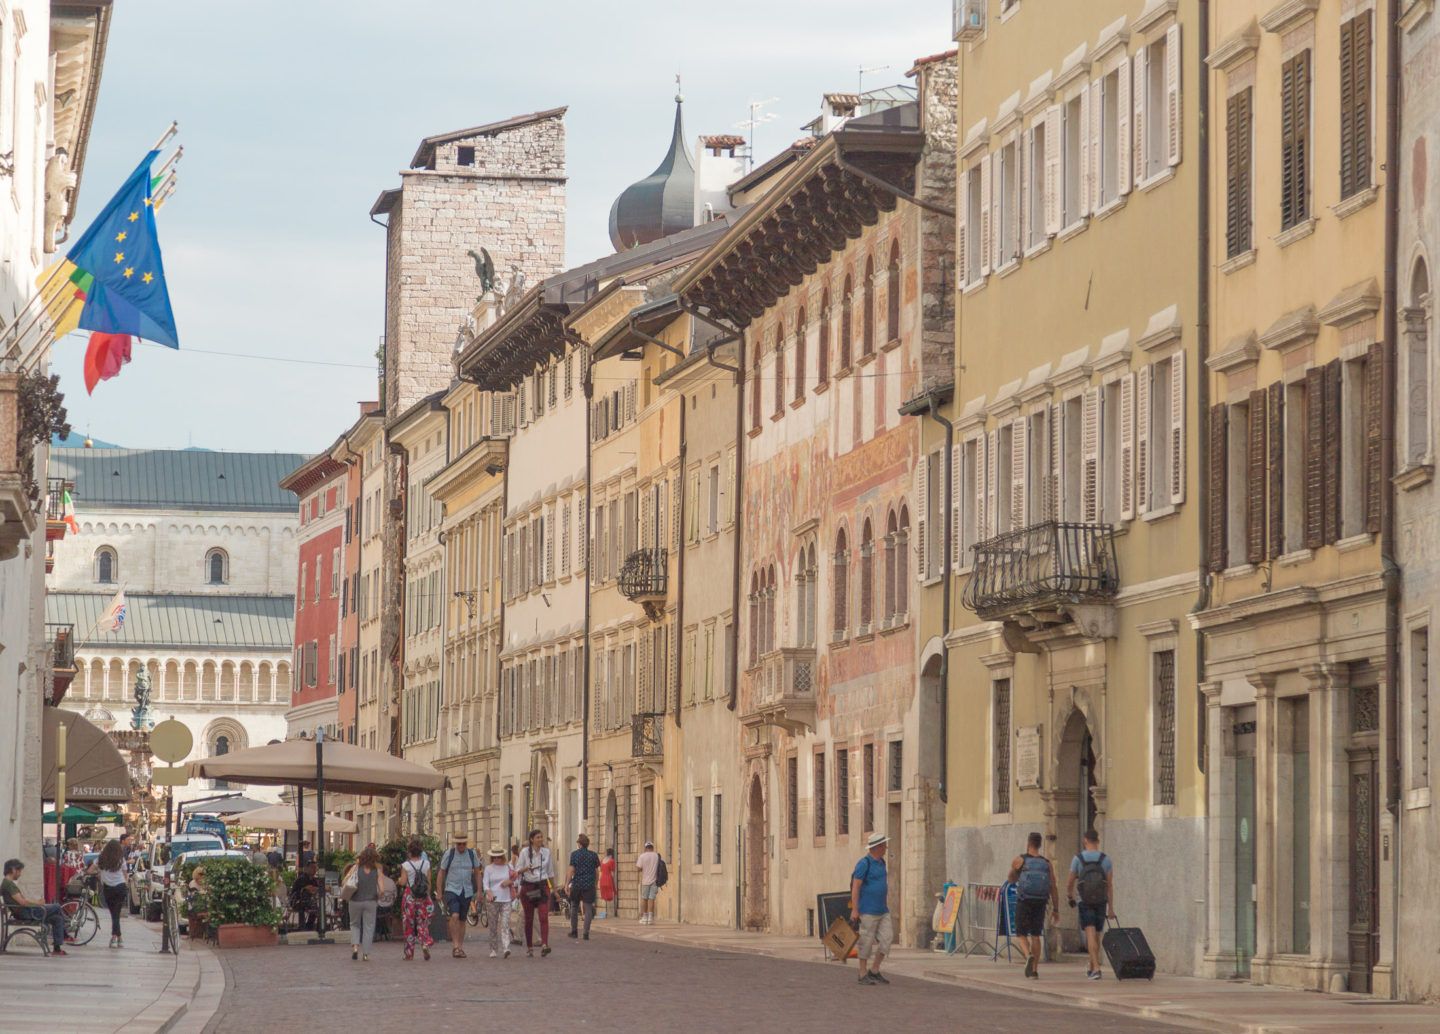 street scene in trento of faded colorful building facades and some people walking on the streets